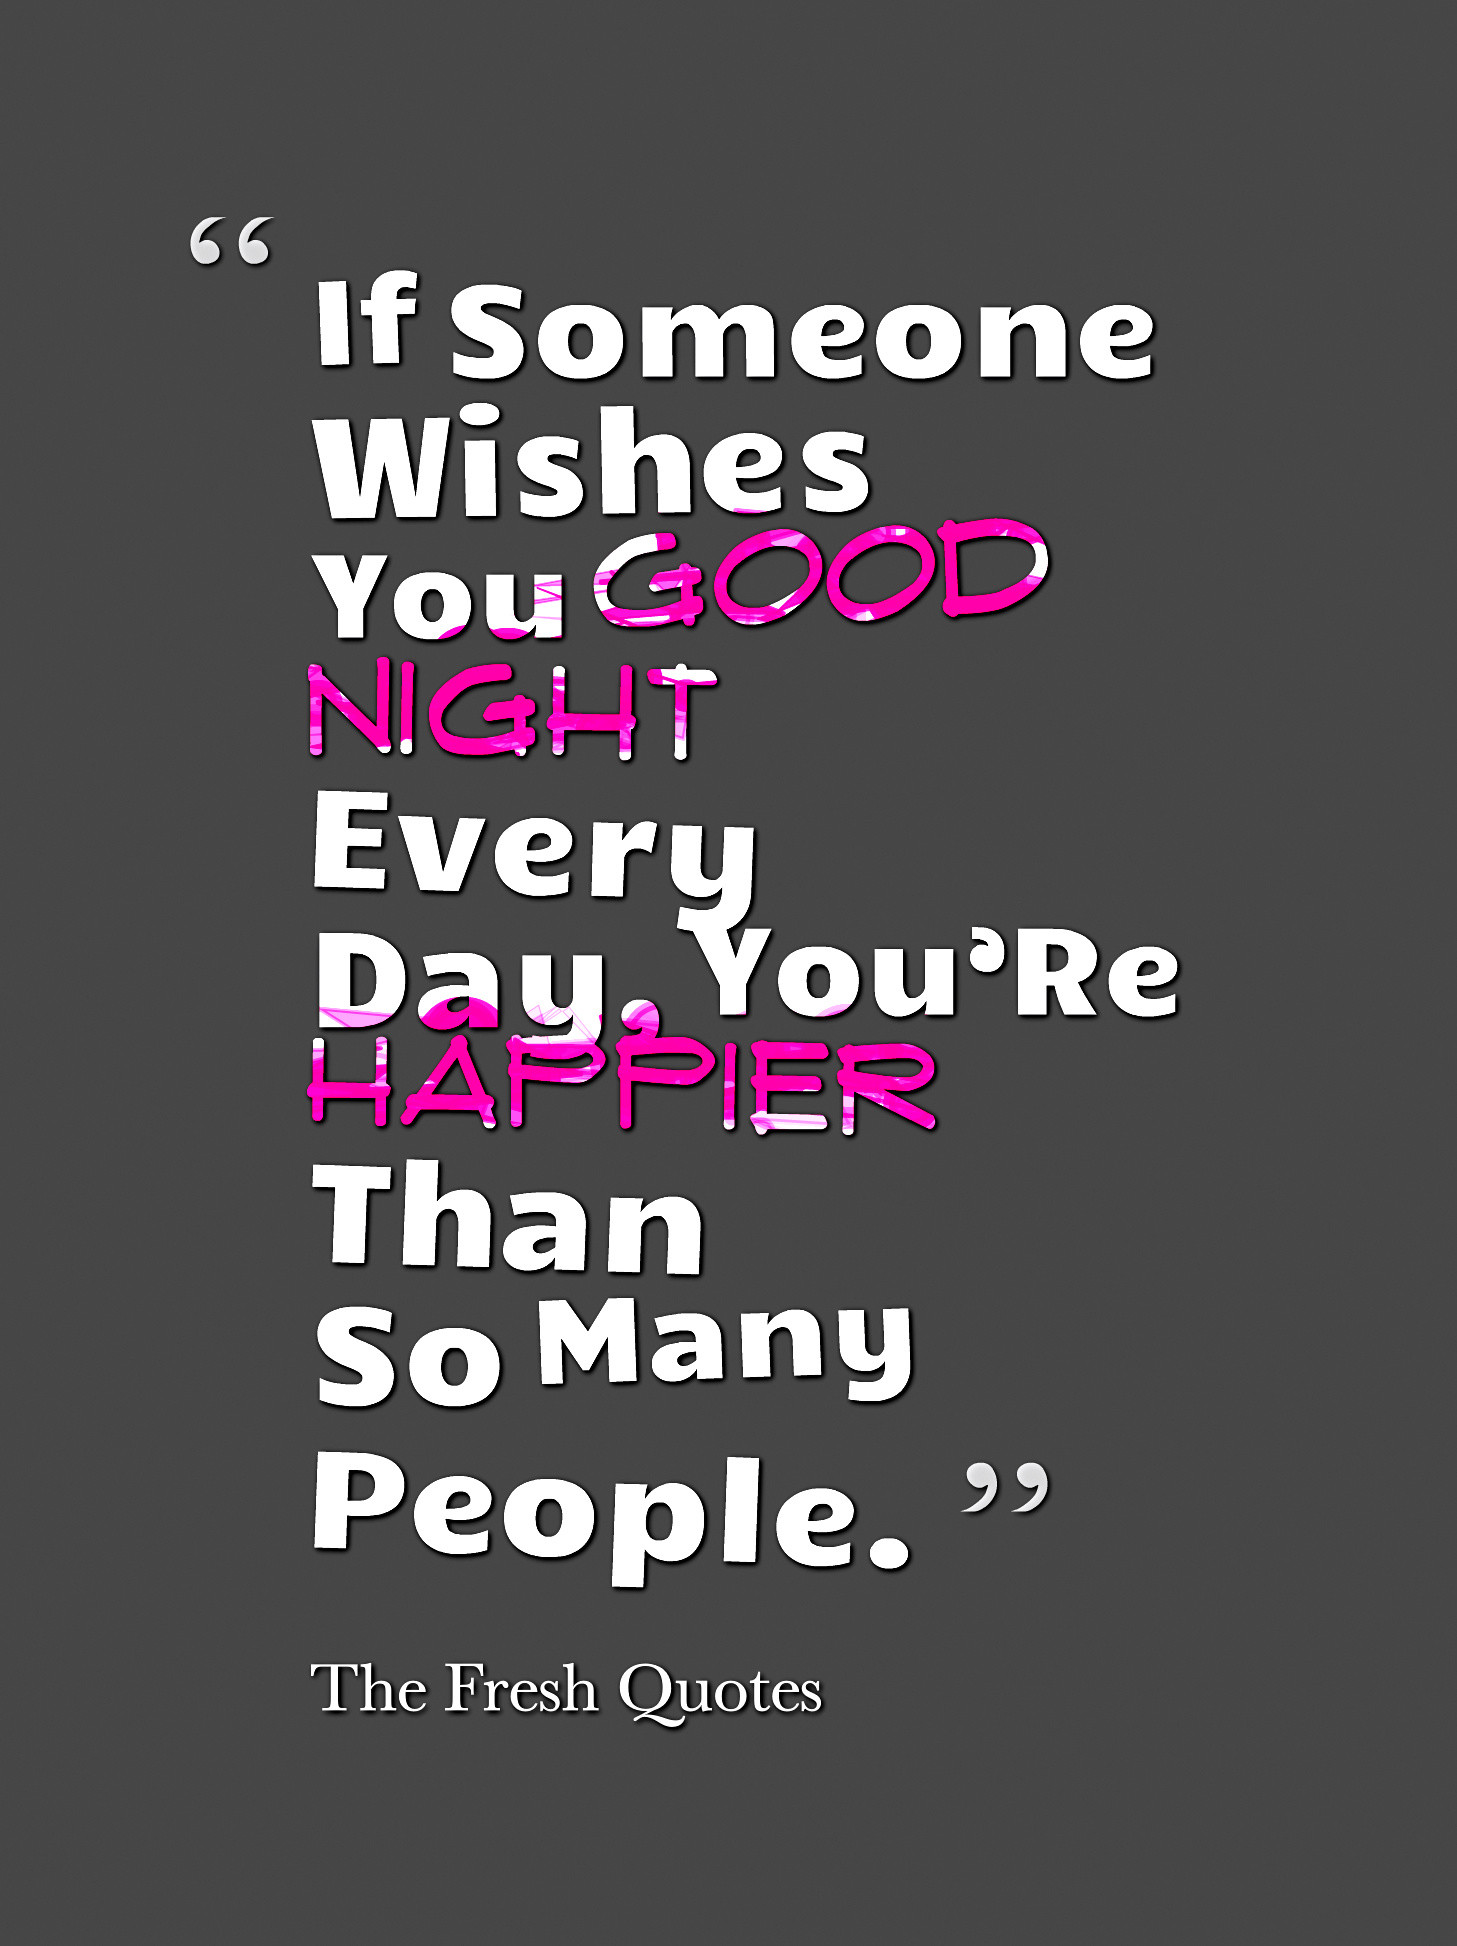 Quotes About Love: Love Sayings Wallpapers ·① WallpaperTag